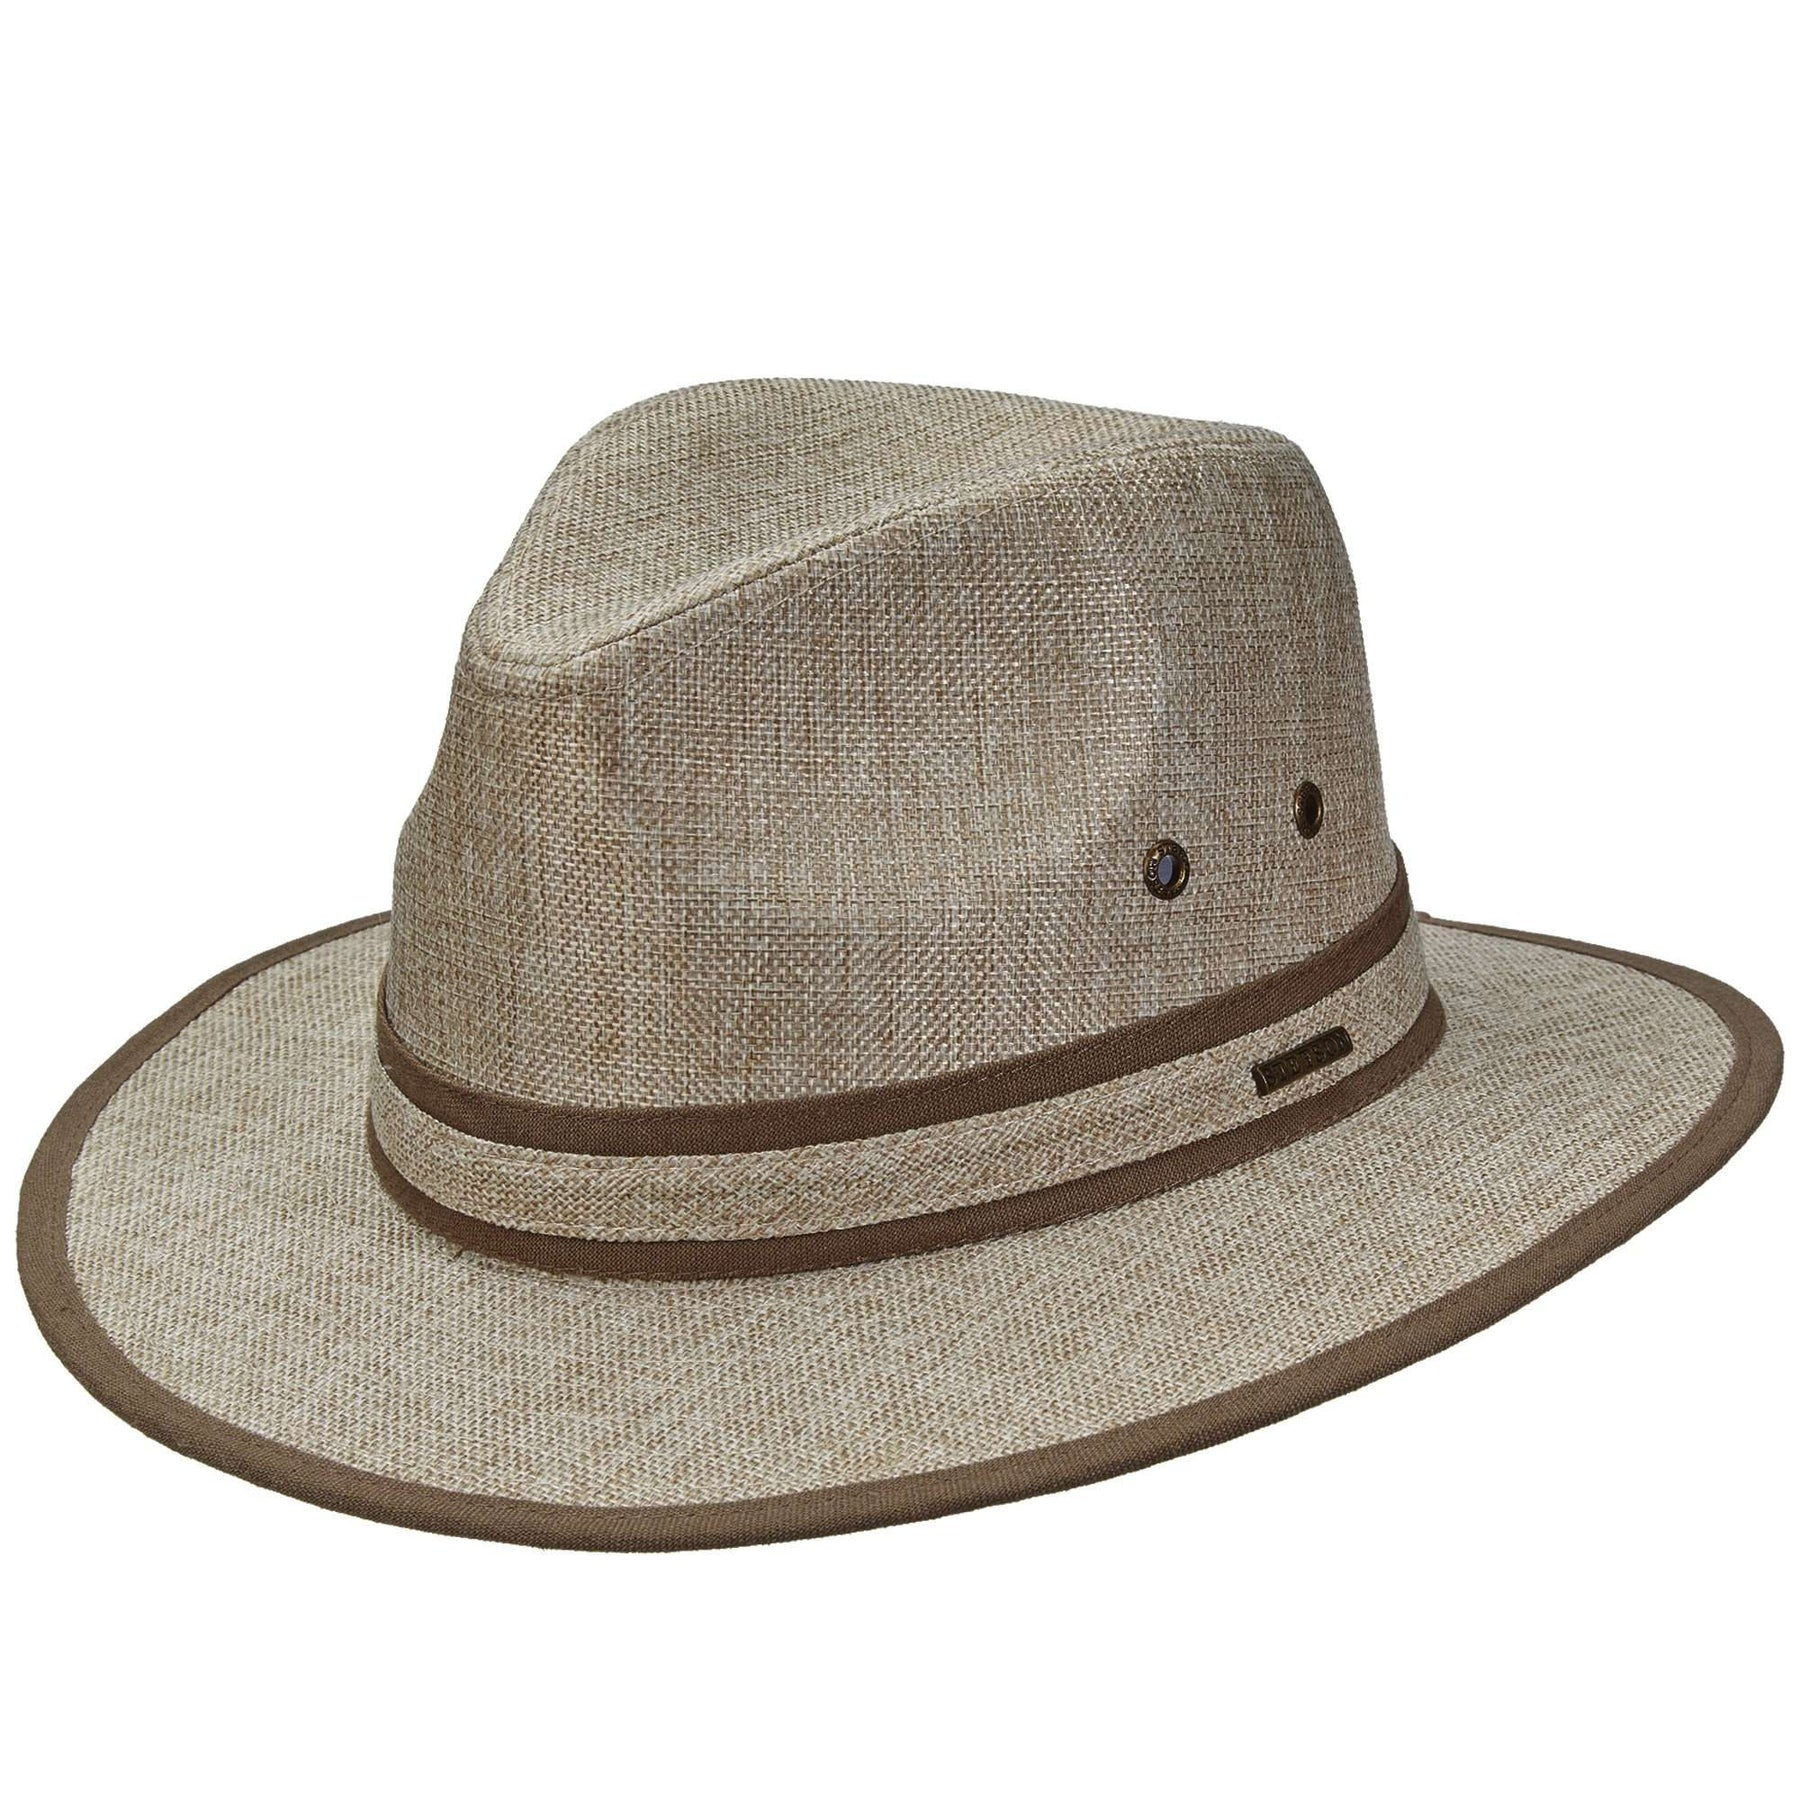 6cca9aa90817e3 Hat Dictionary - Description of Historical Hat Styles — SetarTrading ...